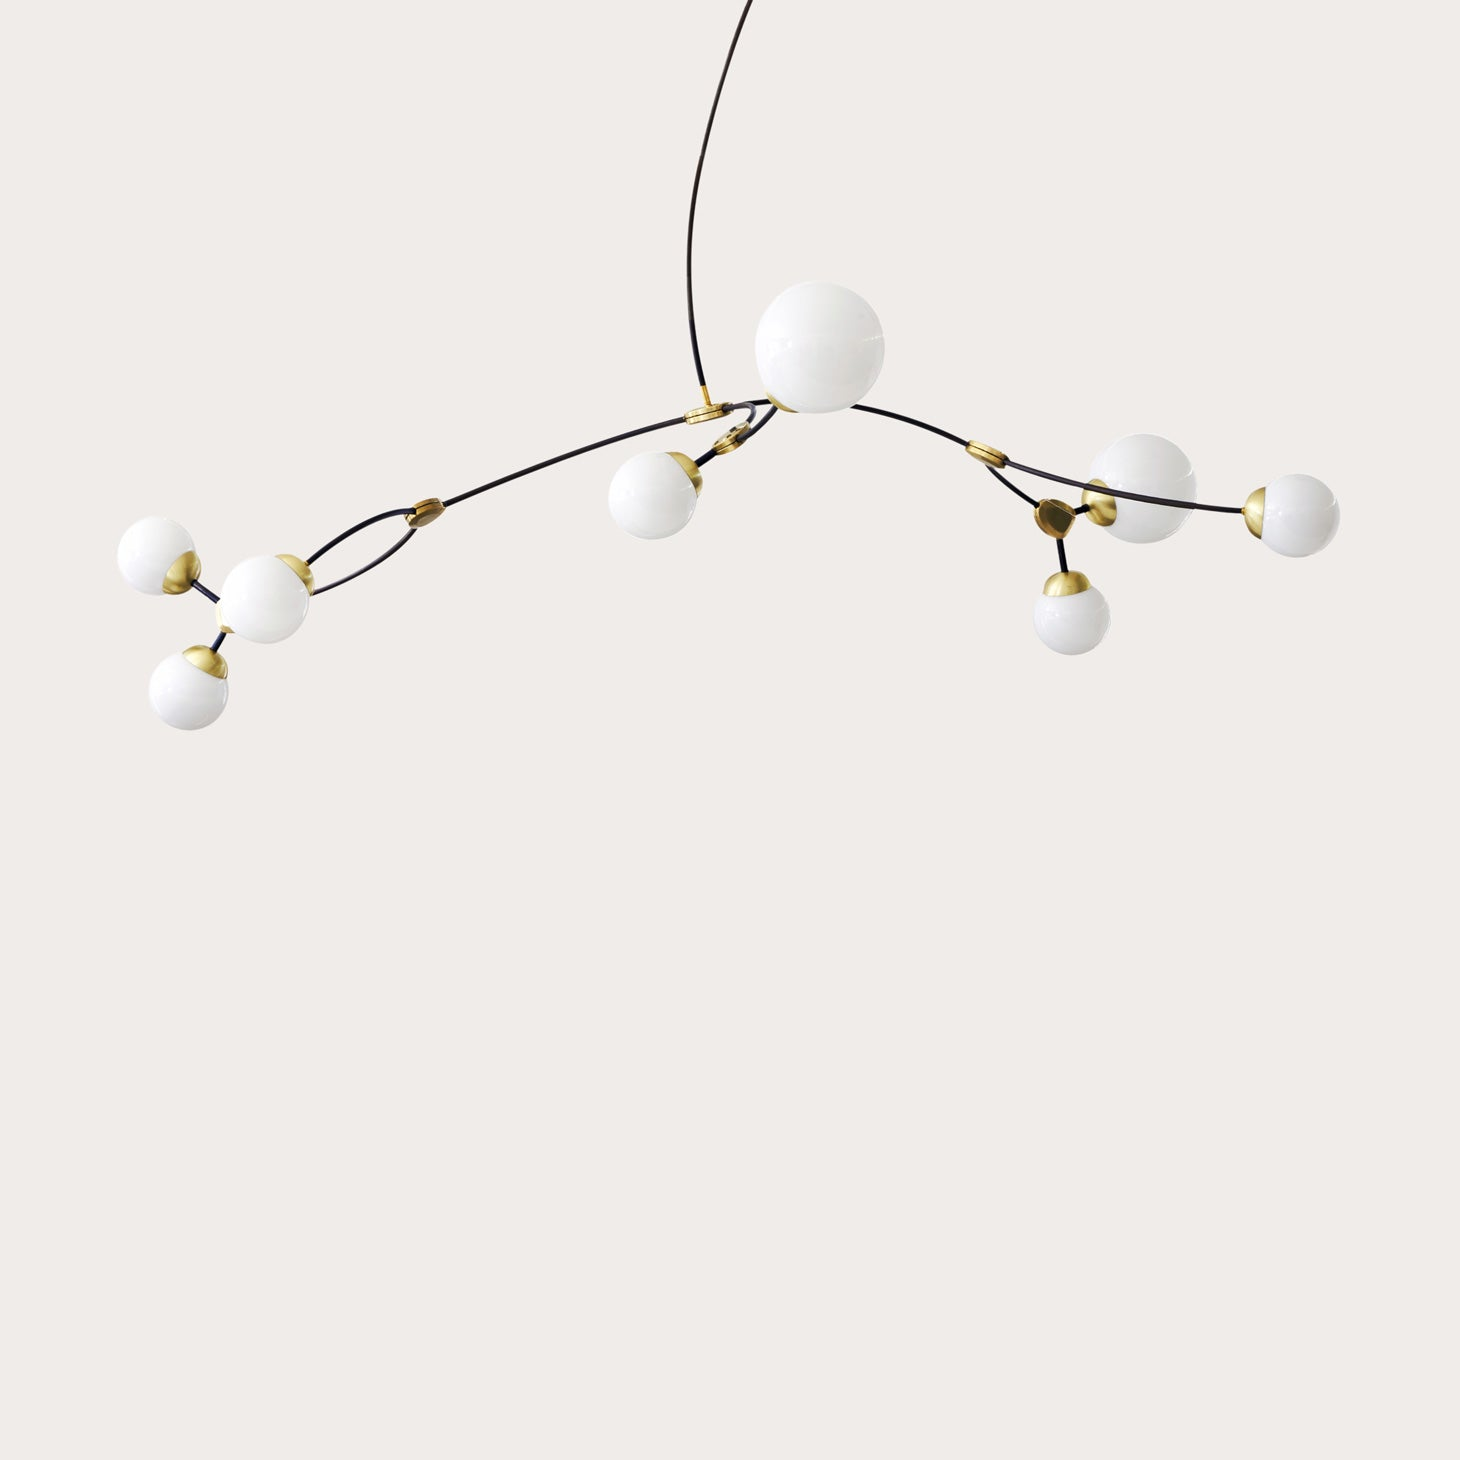 Ivy Pendant 8 Lighting Chris Turner Designer Furniture Sku: 632-160-10074